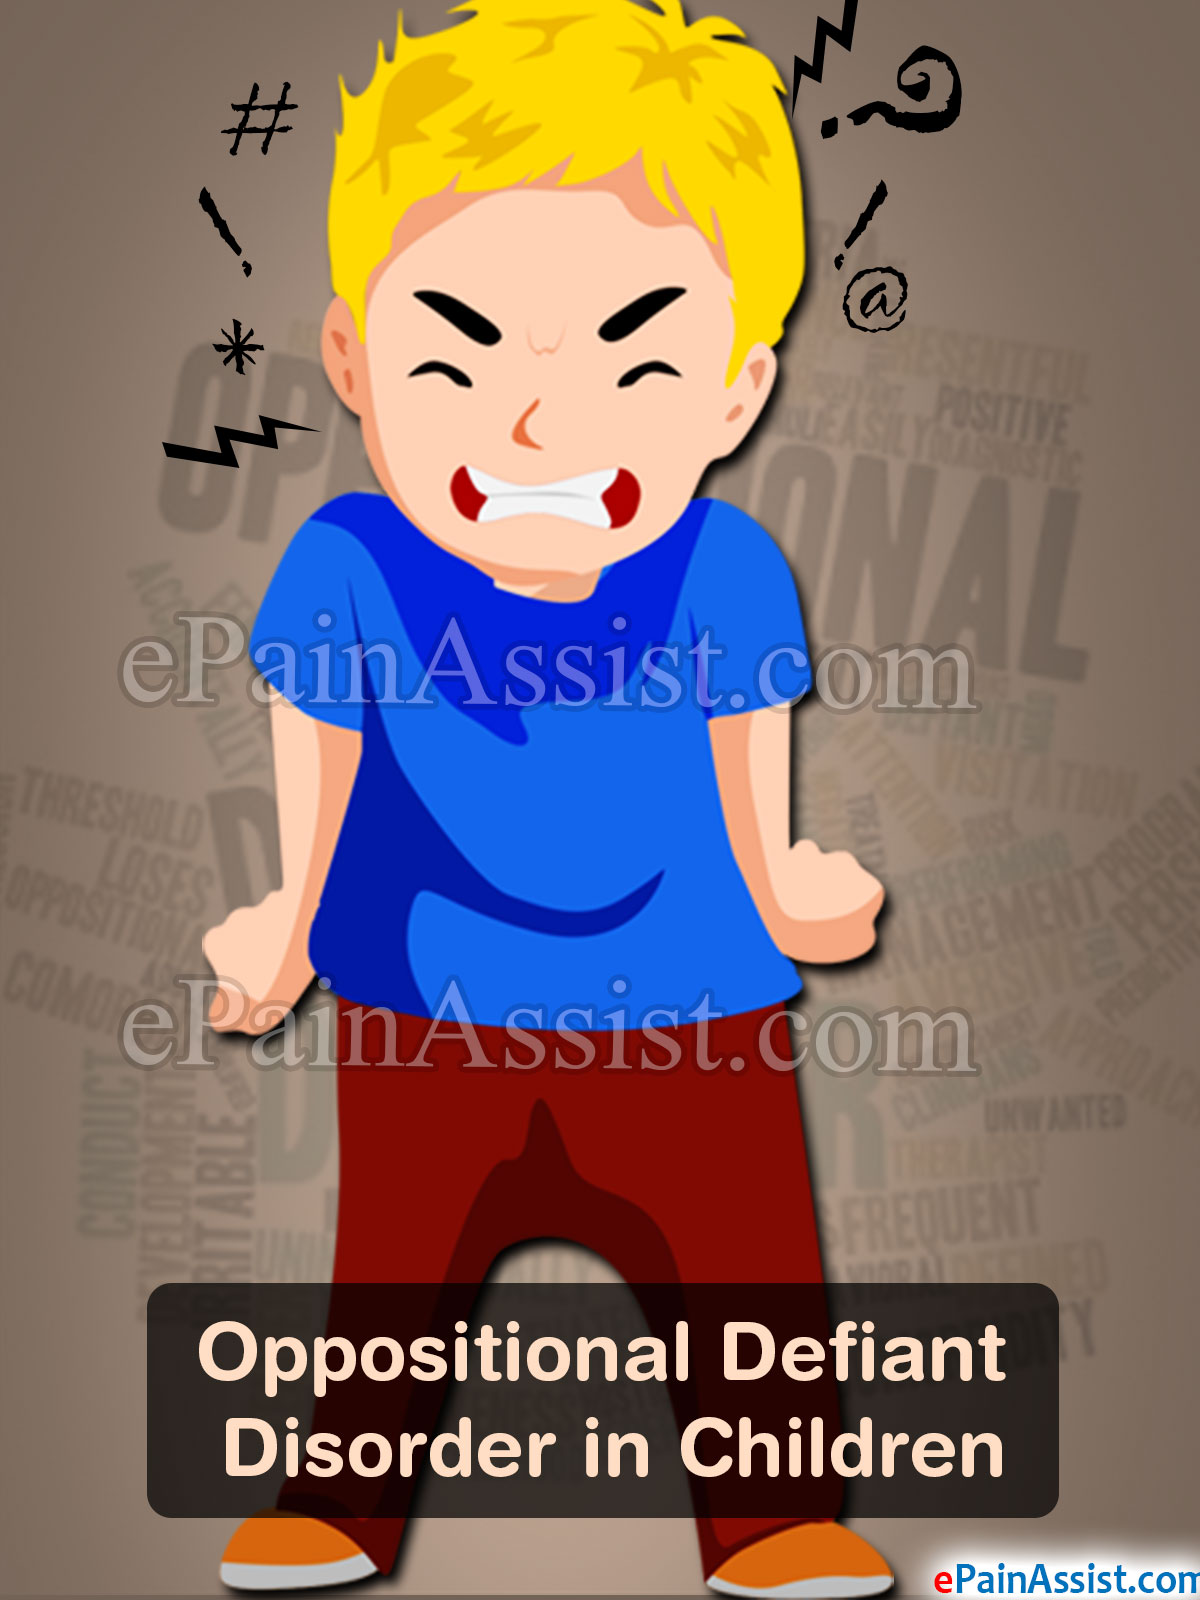 oppositional defiant disorder in children symptoms causes treatment